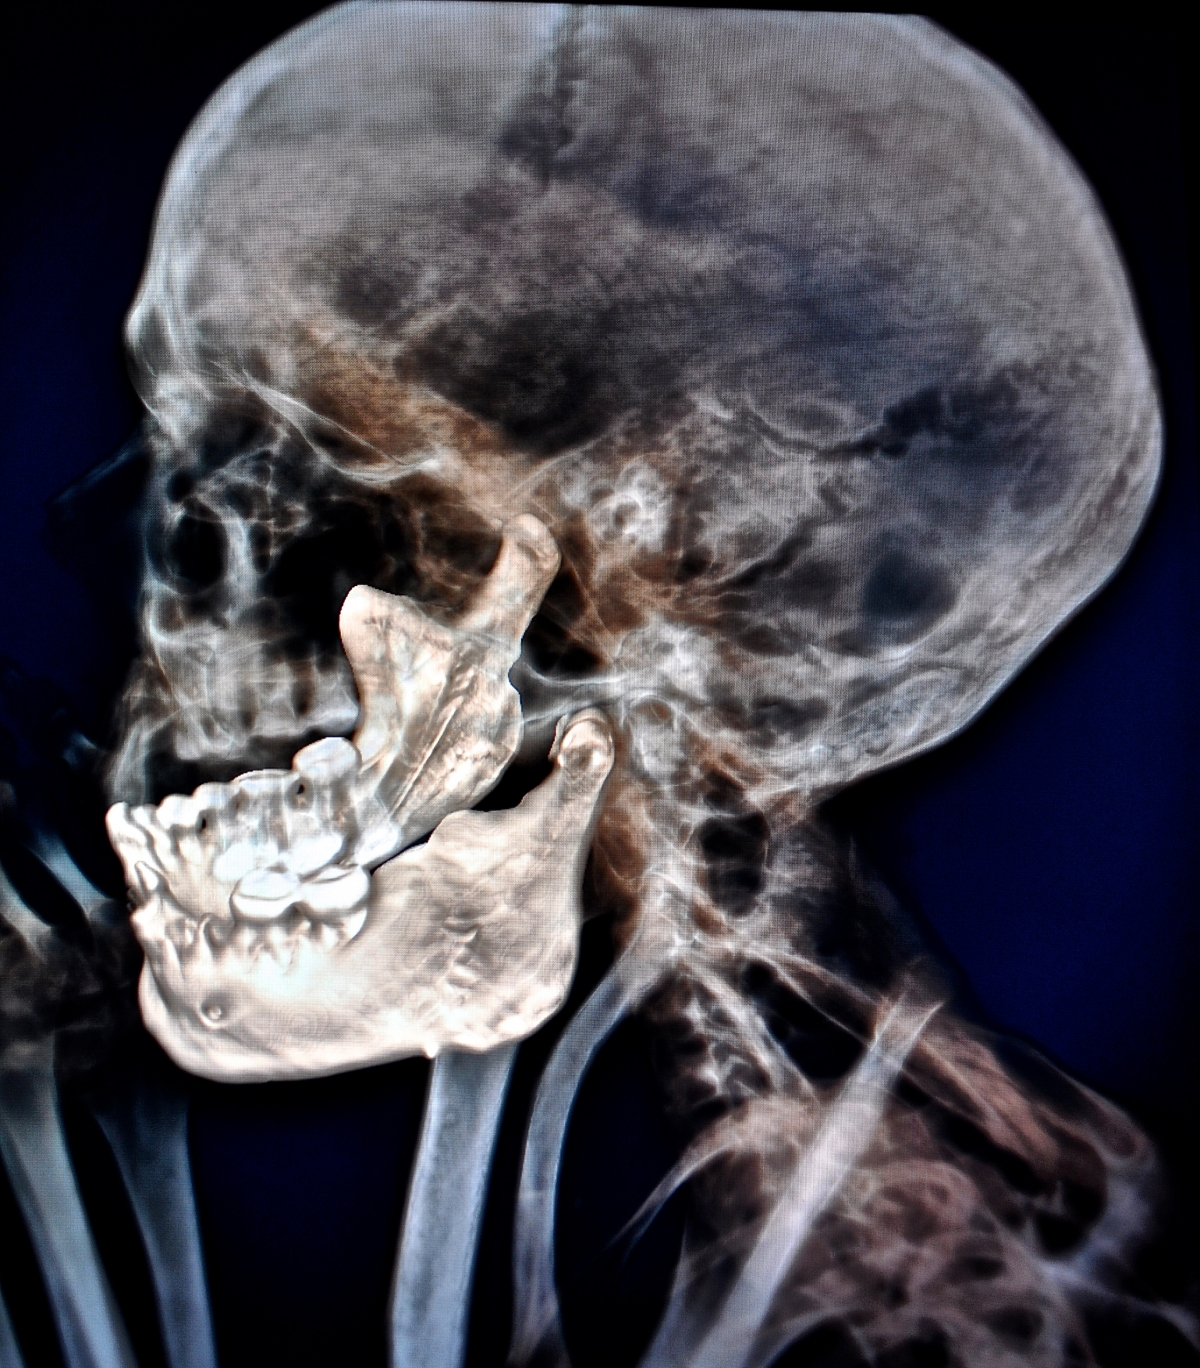 The CT scan reveals the state of dental decay in the mummy